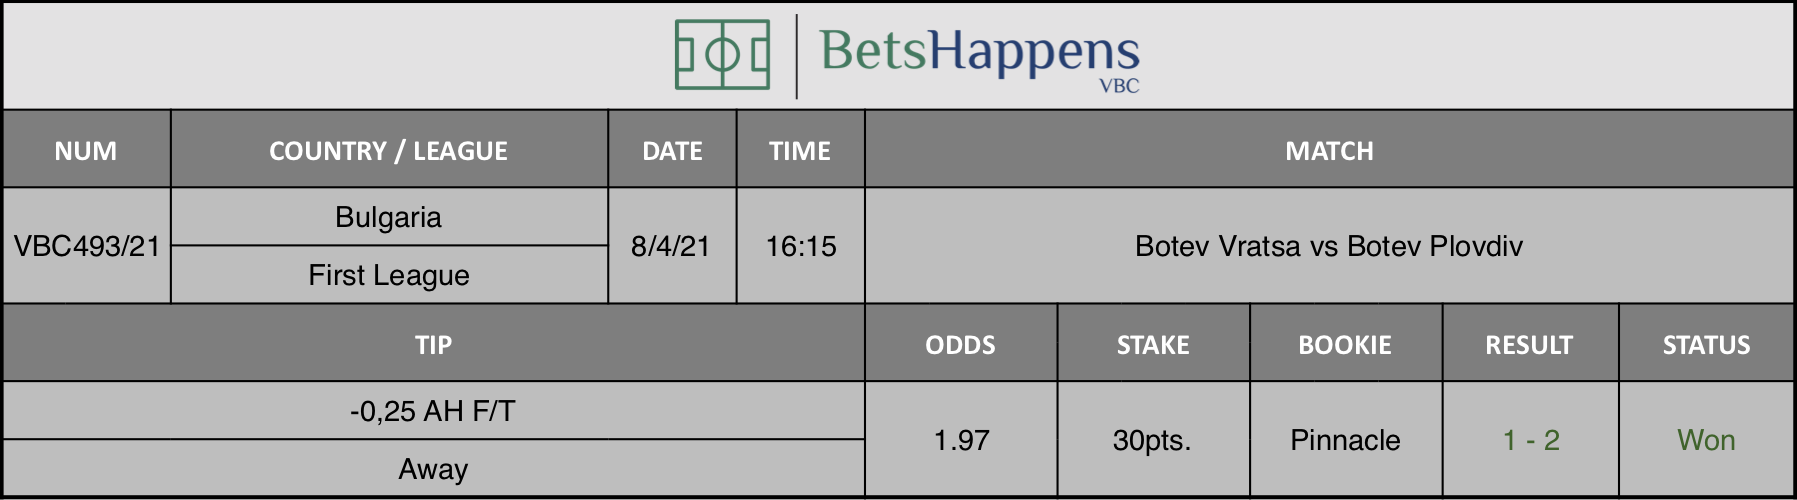 Results of our tip for the Botev Vratsa vs Botev Plovdiv match where -0,25 AH F/T Away is recommended.